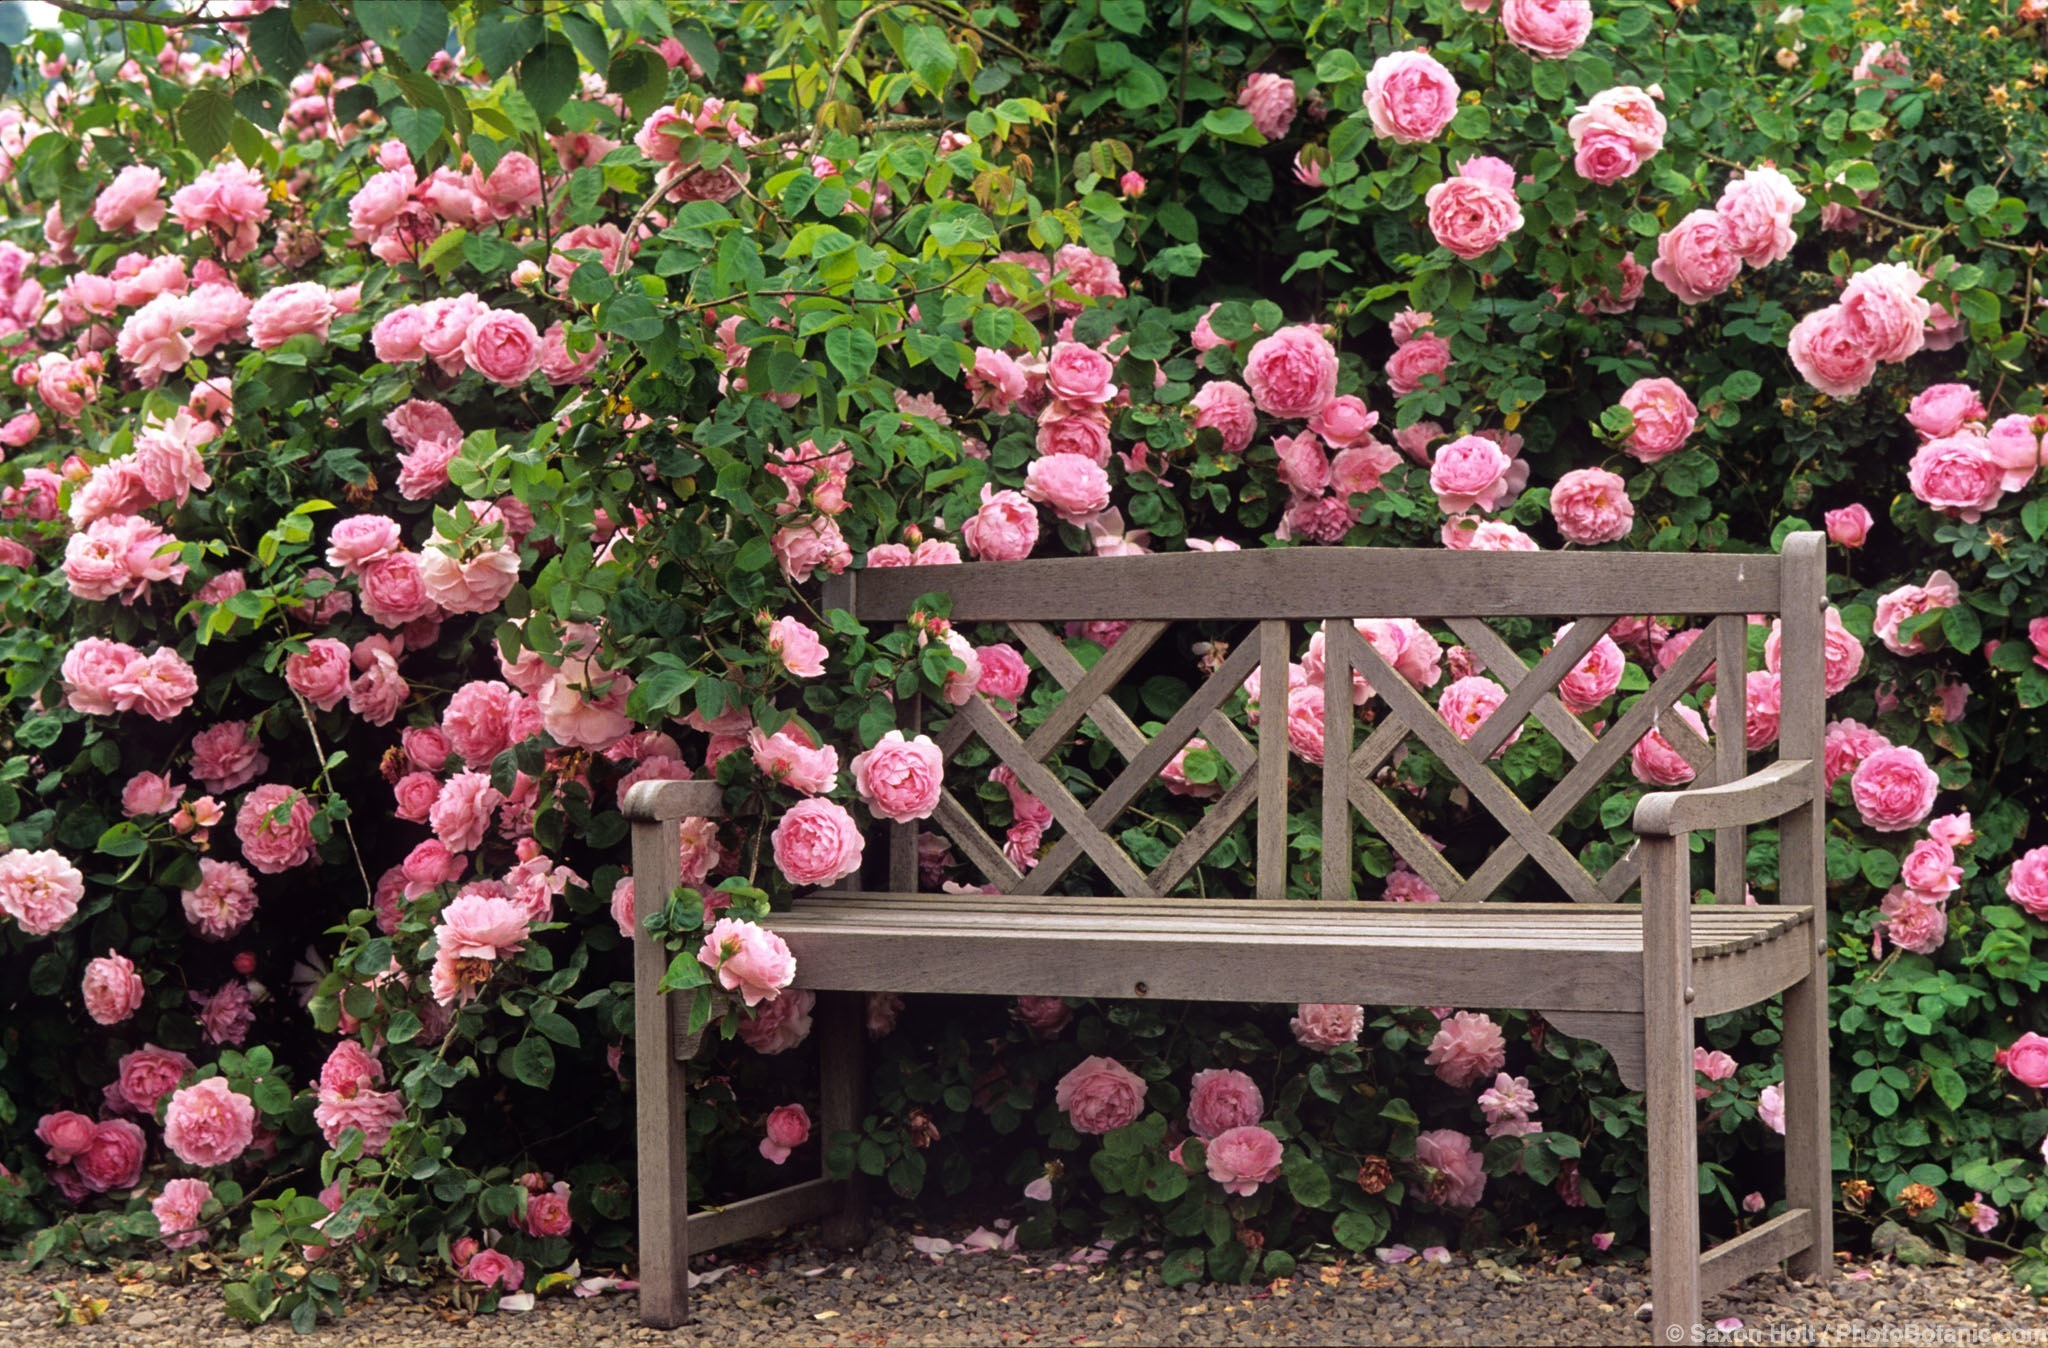 garden photographer saxon holt shows how to photograph roses. Black Bedroom Furniture Sets. Home Design Ideas